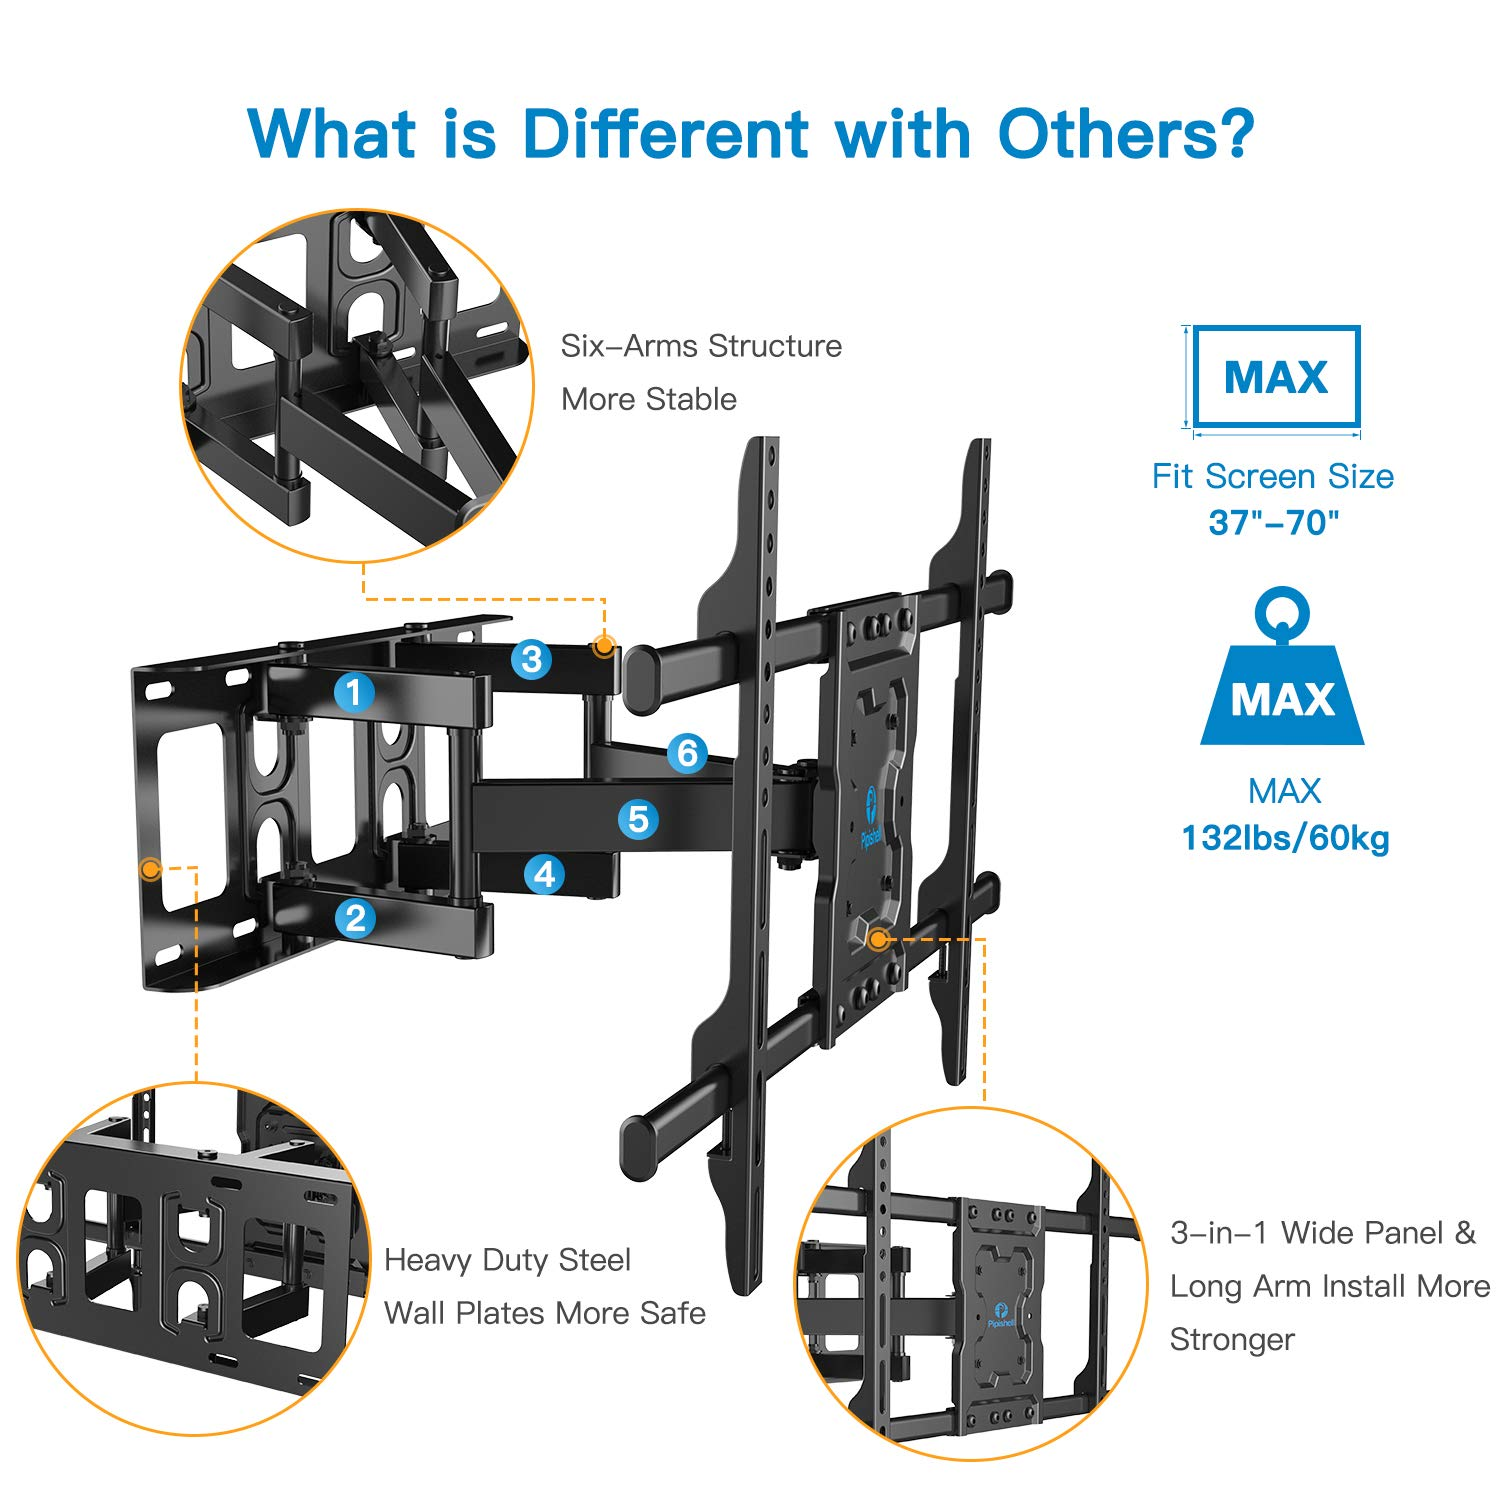 Full Motion TV Wall Mount Bracket Dual Articulating Arms Swivels Tilts Rotation for Most 37-70 Inch LED, LCD, OLED Flat&Curved TVs, Holds up to 132lbs, Max VESA 600x400mm by Pipishell by Pipishell (Image #3)